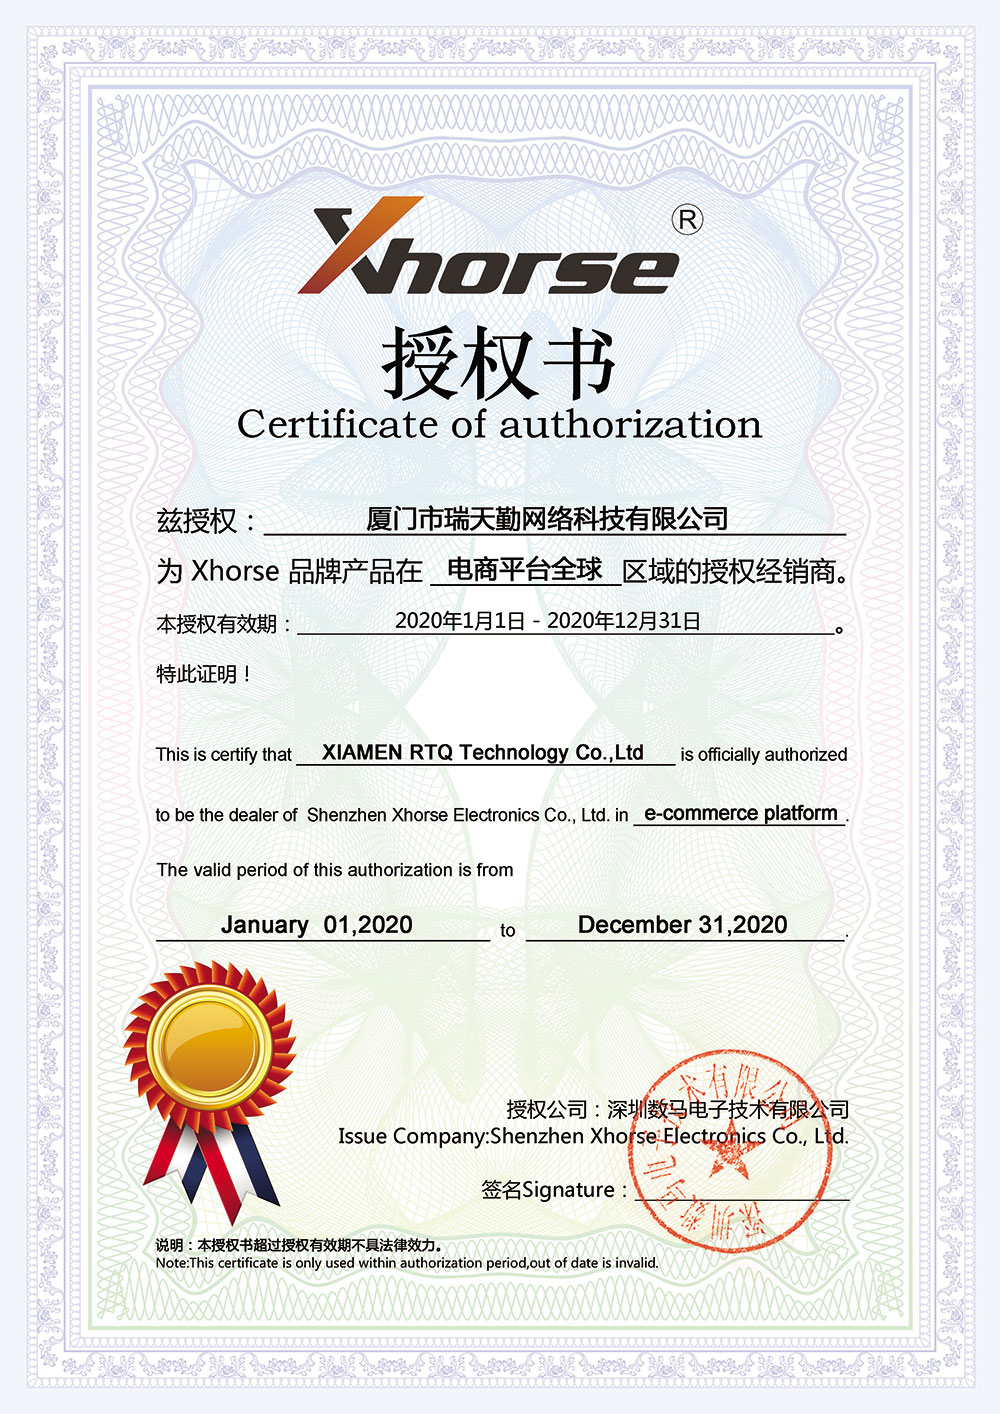 Xhorse Certificate of Authorization